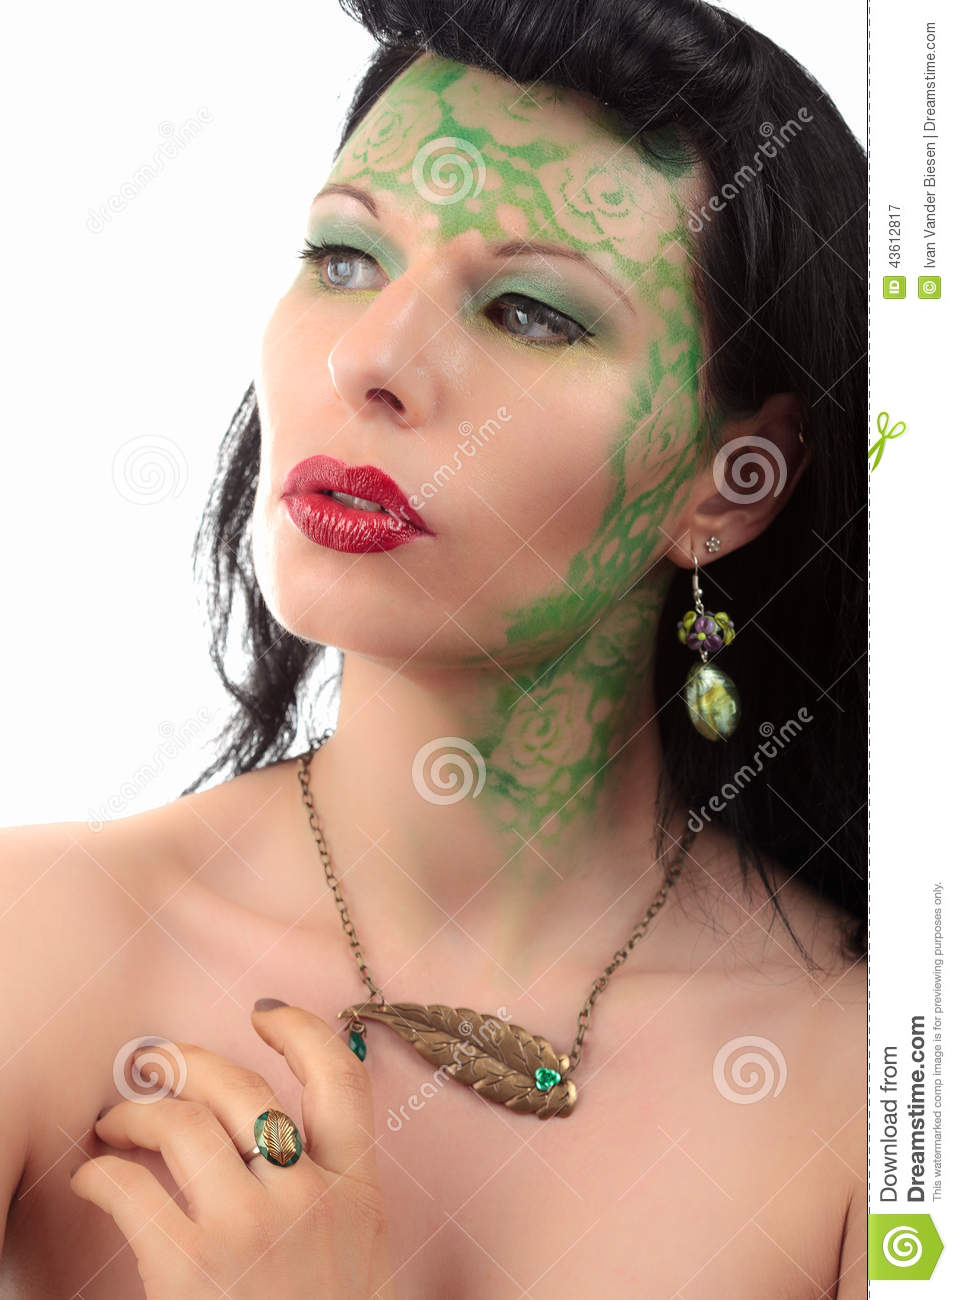 green makeup girl art nouveau ring earring and necklace